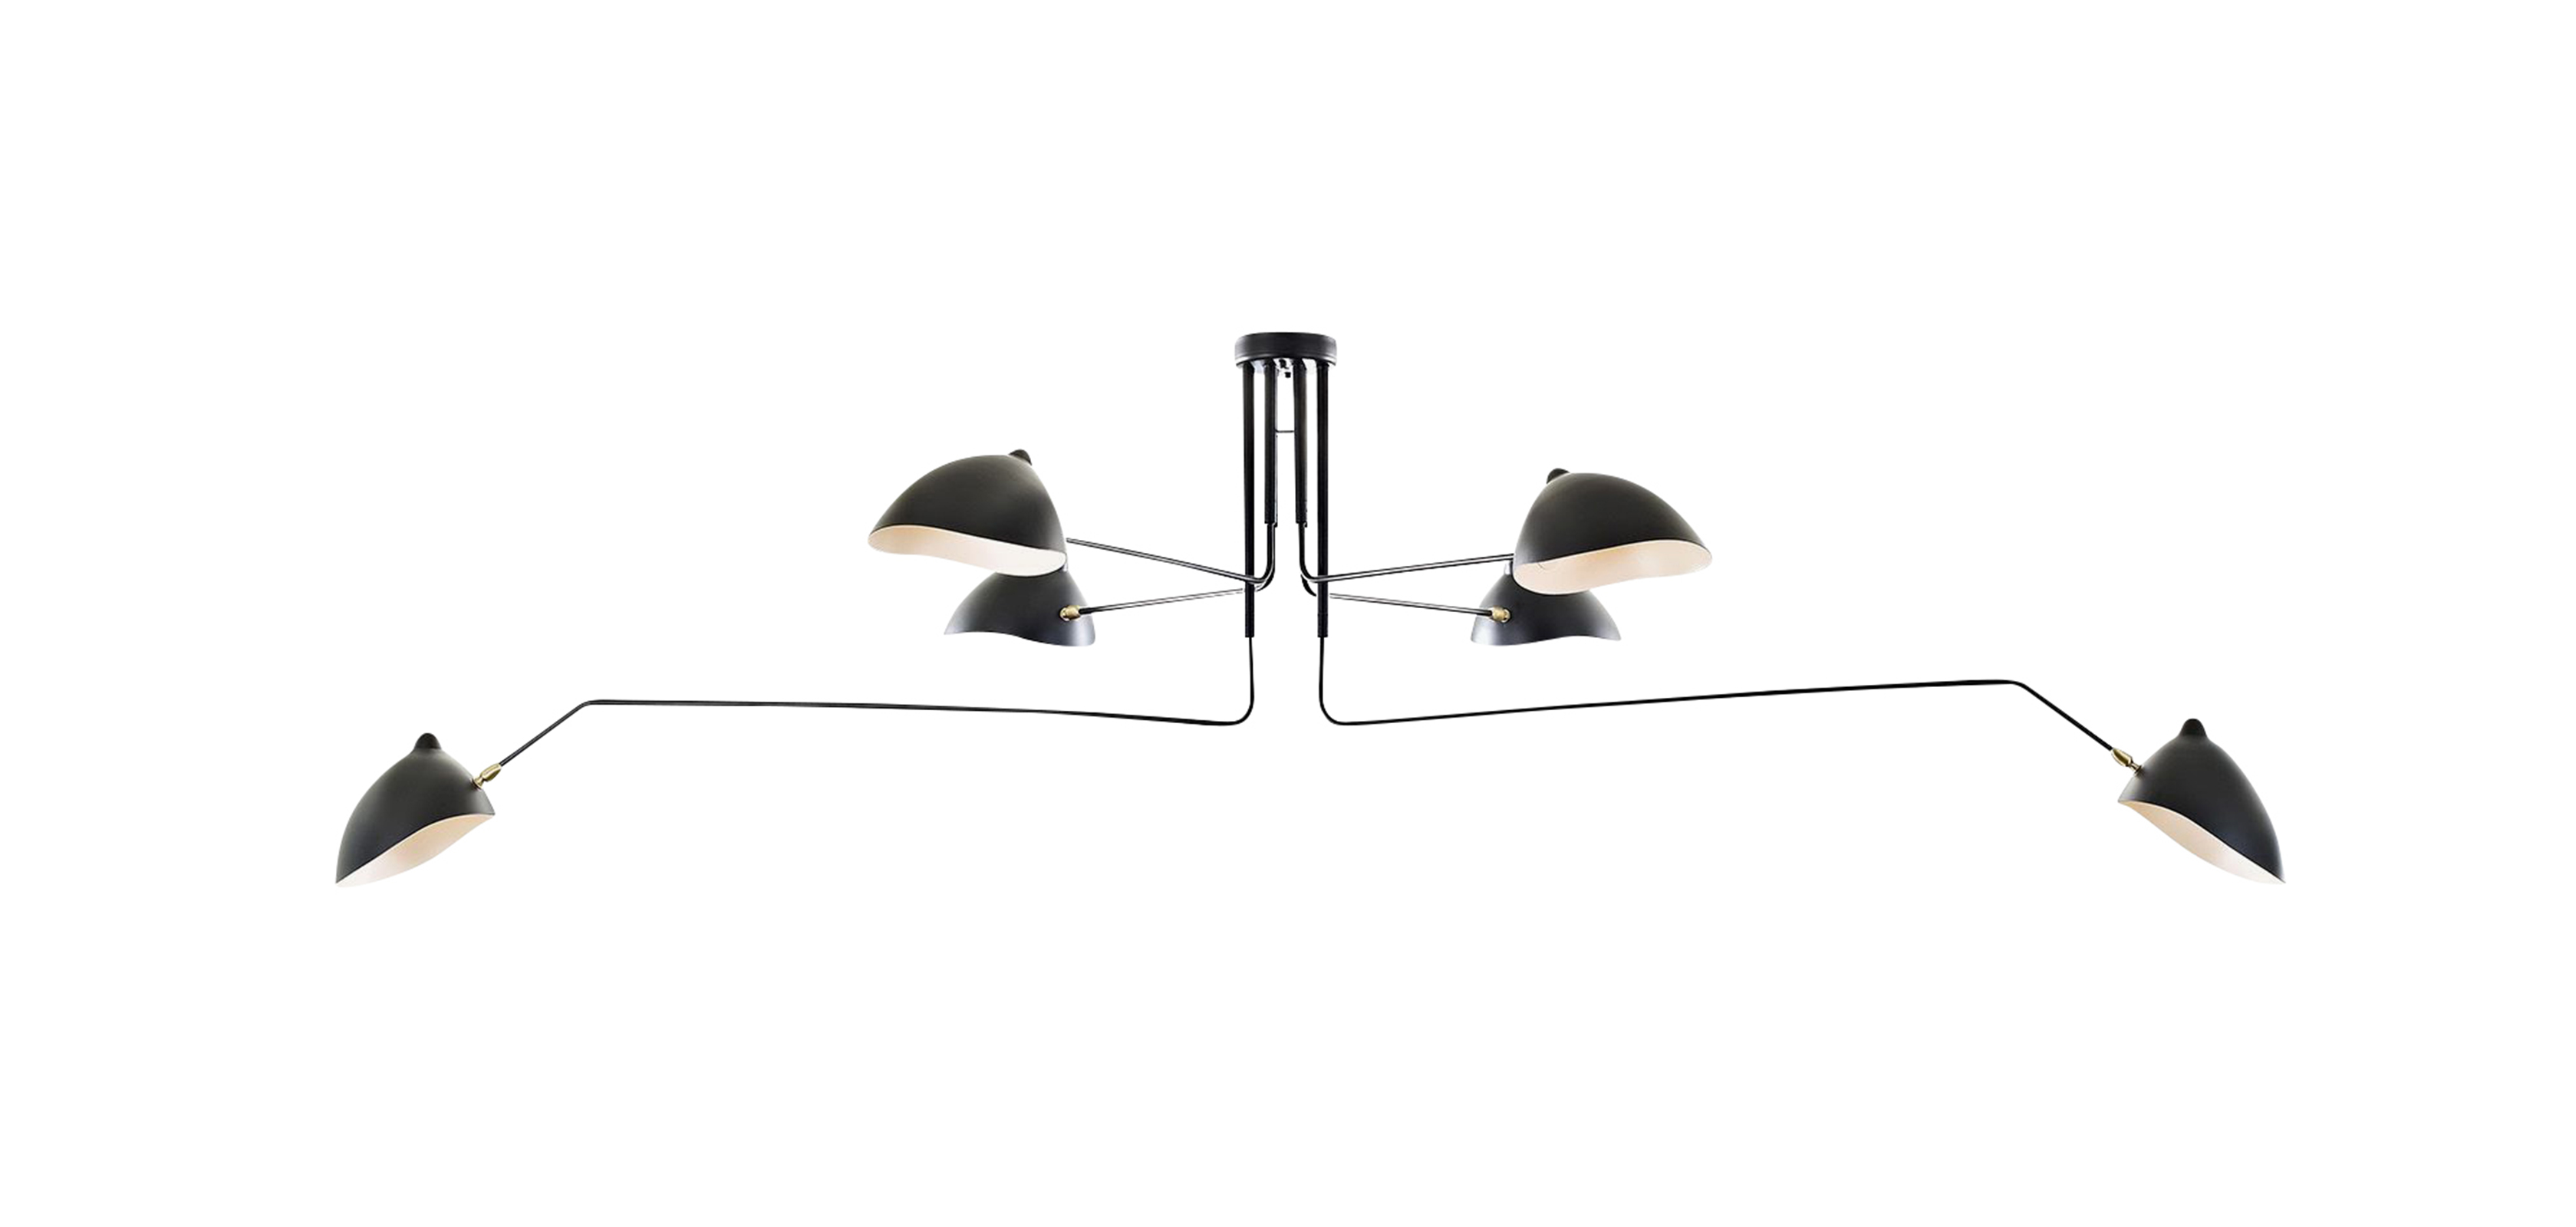 lampe en suspension mcl r6 serge mouille style pas cher. Black Bedroom Furniture Sets. Home Design Ideas